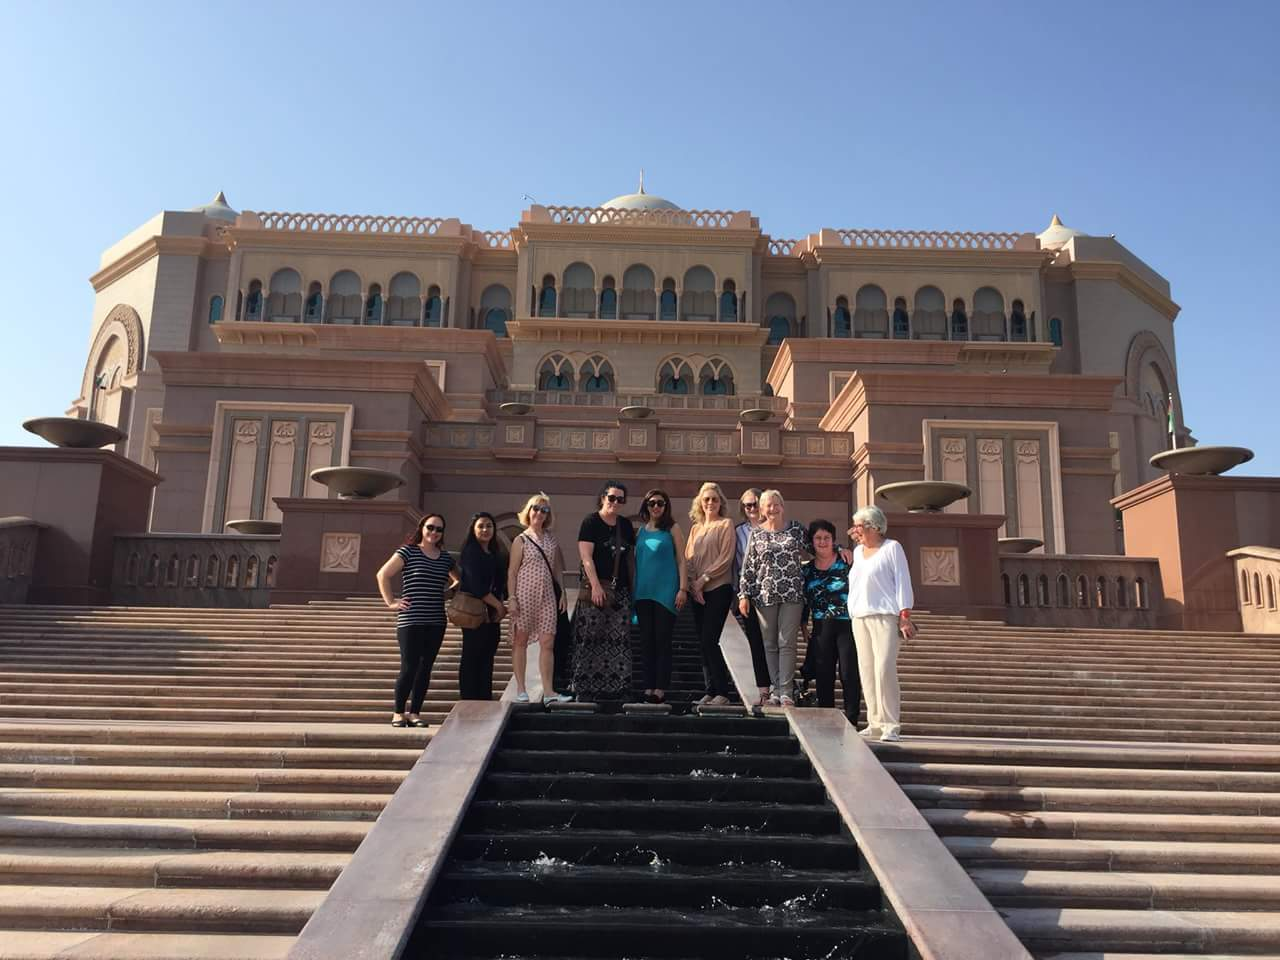 standing outside the Emirates Palace